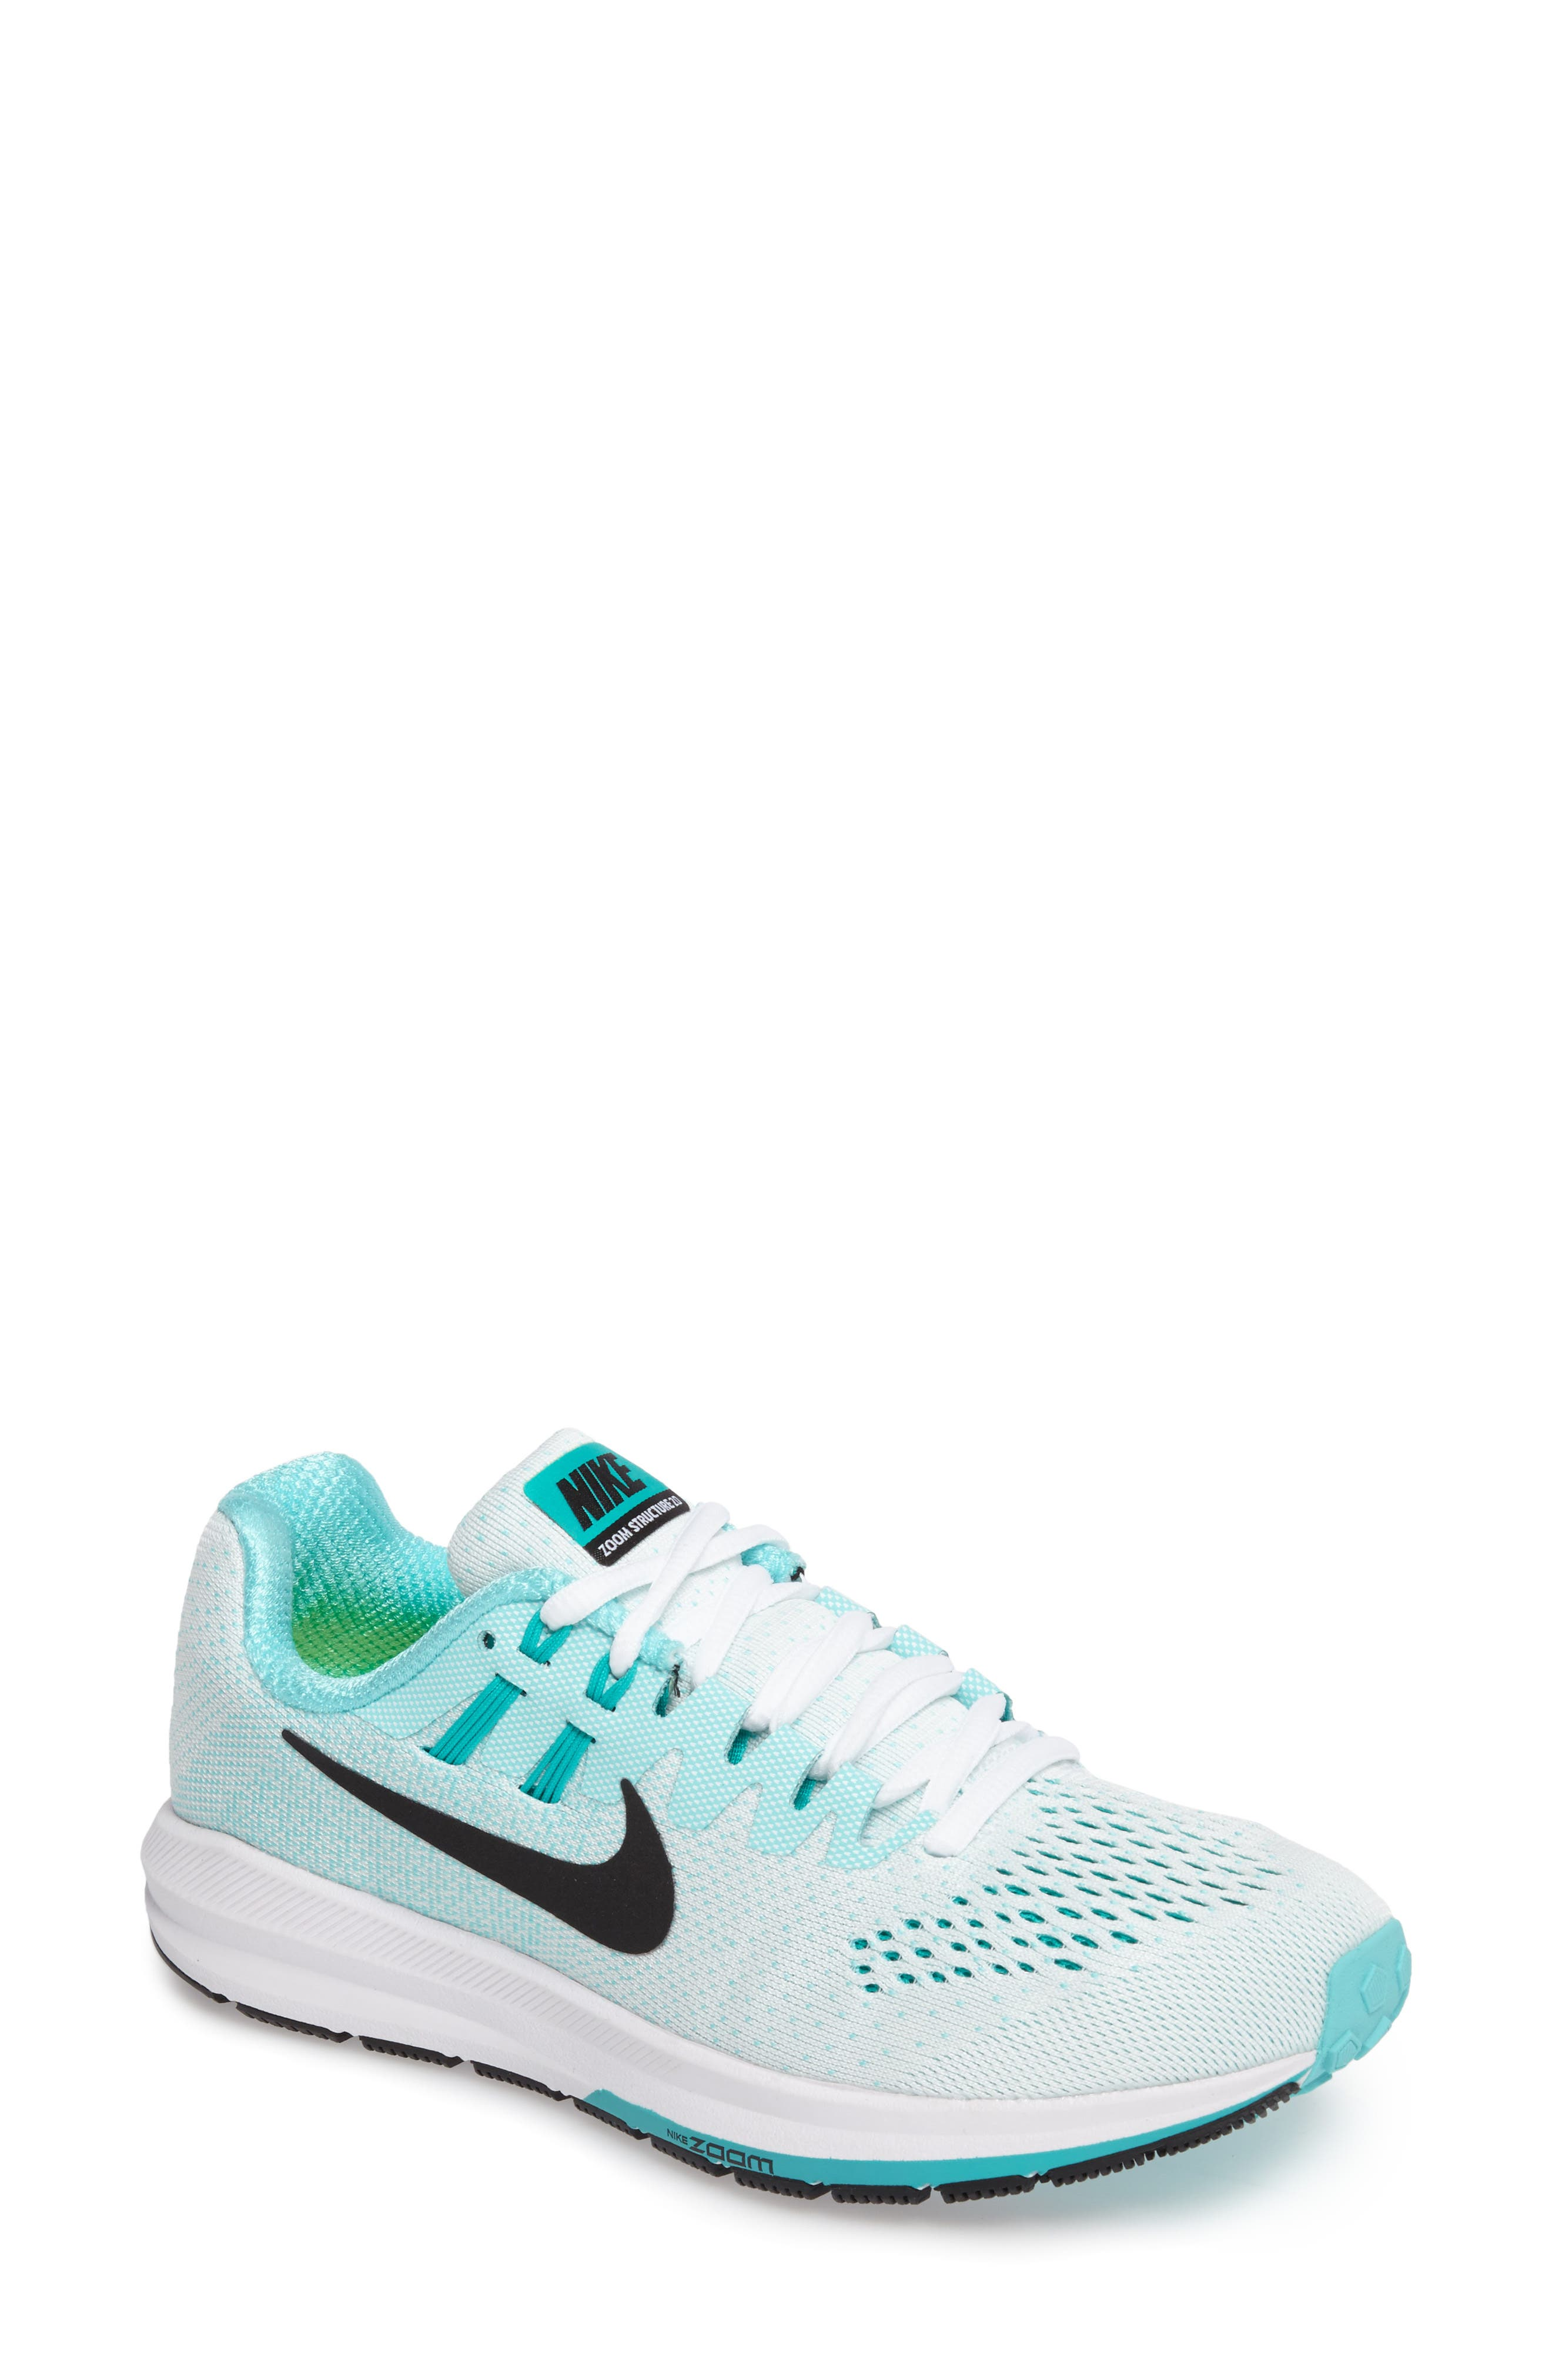 NIKE Air Zoom Structure 20 Running Shoe